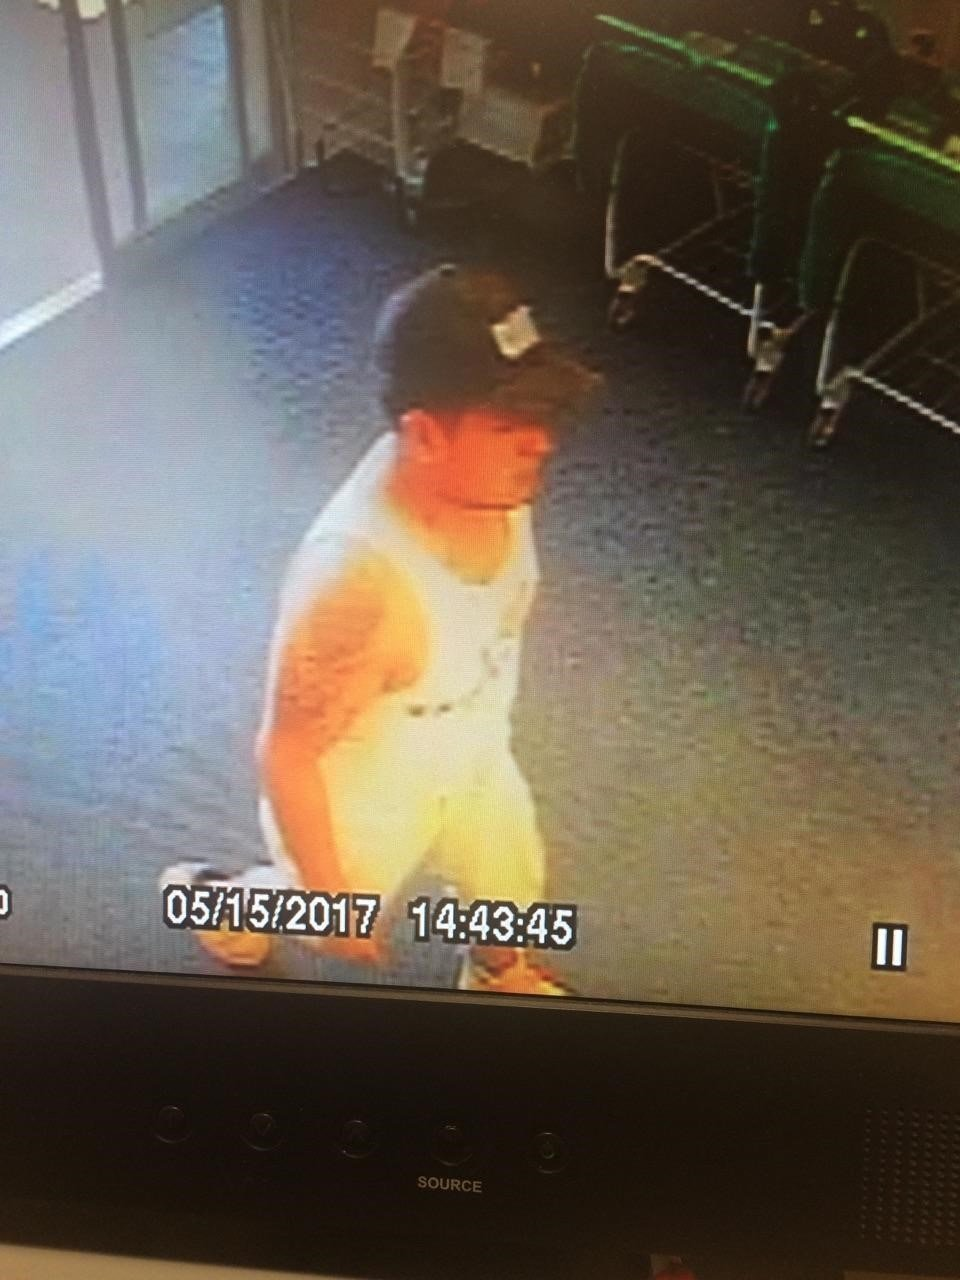 Suspected of filming woman in restroom (Source: Columbia County Sheriff's Office)